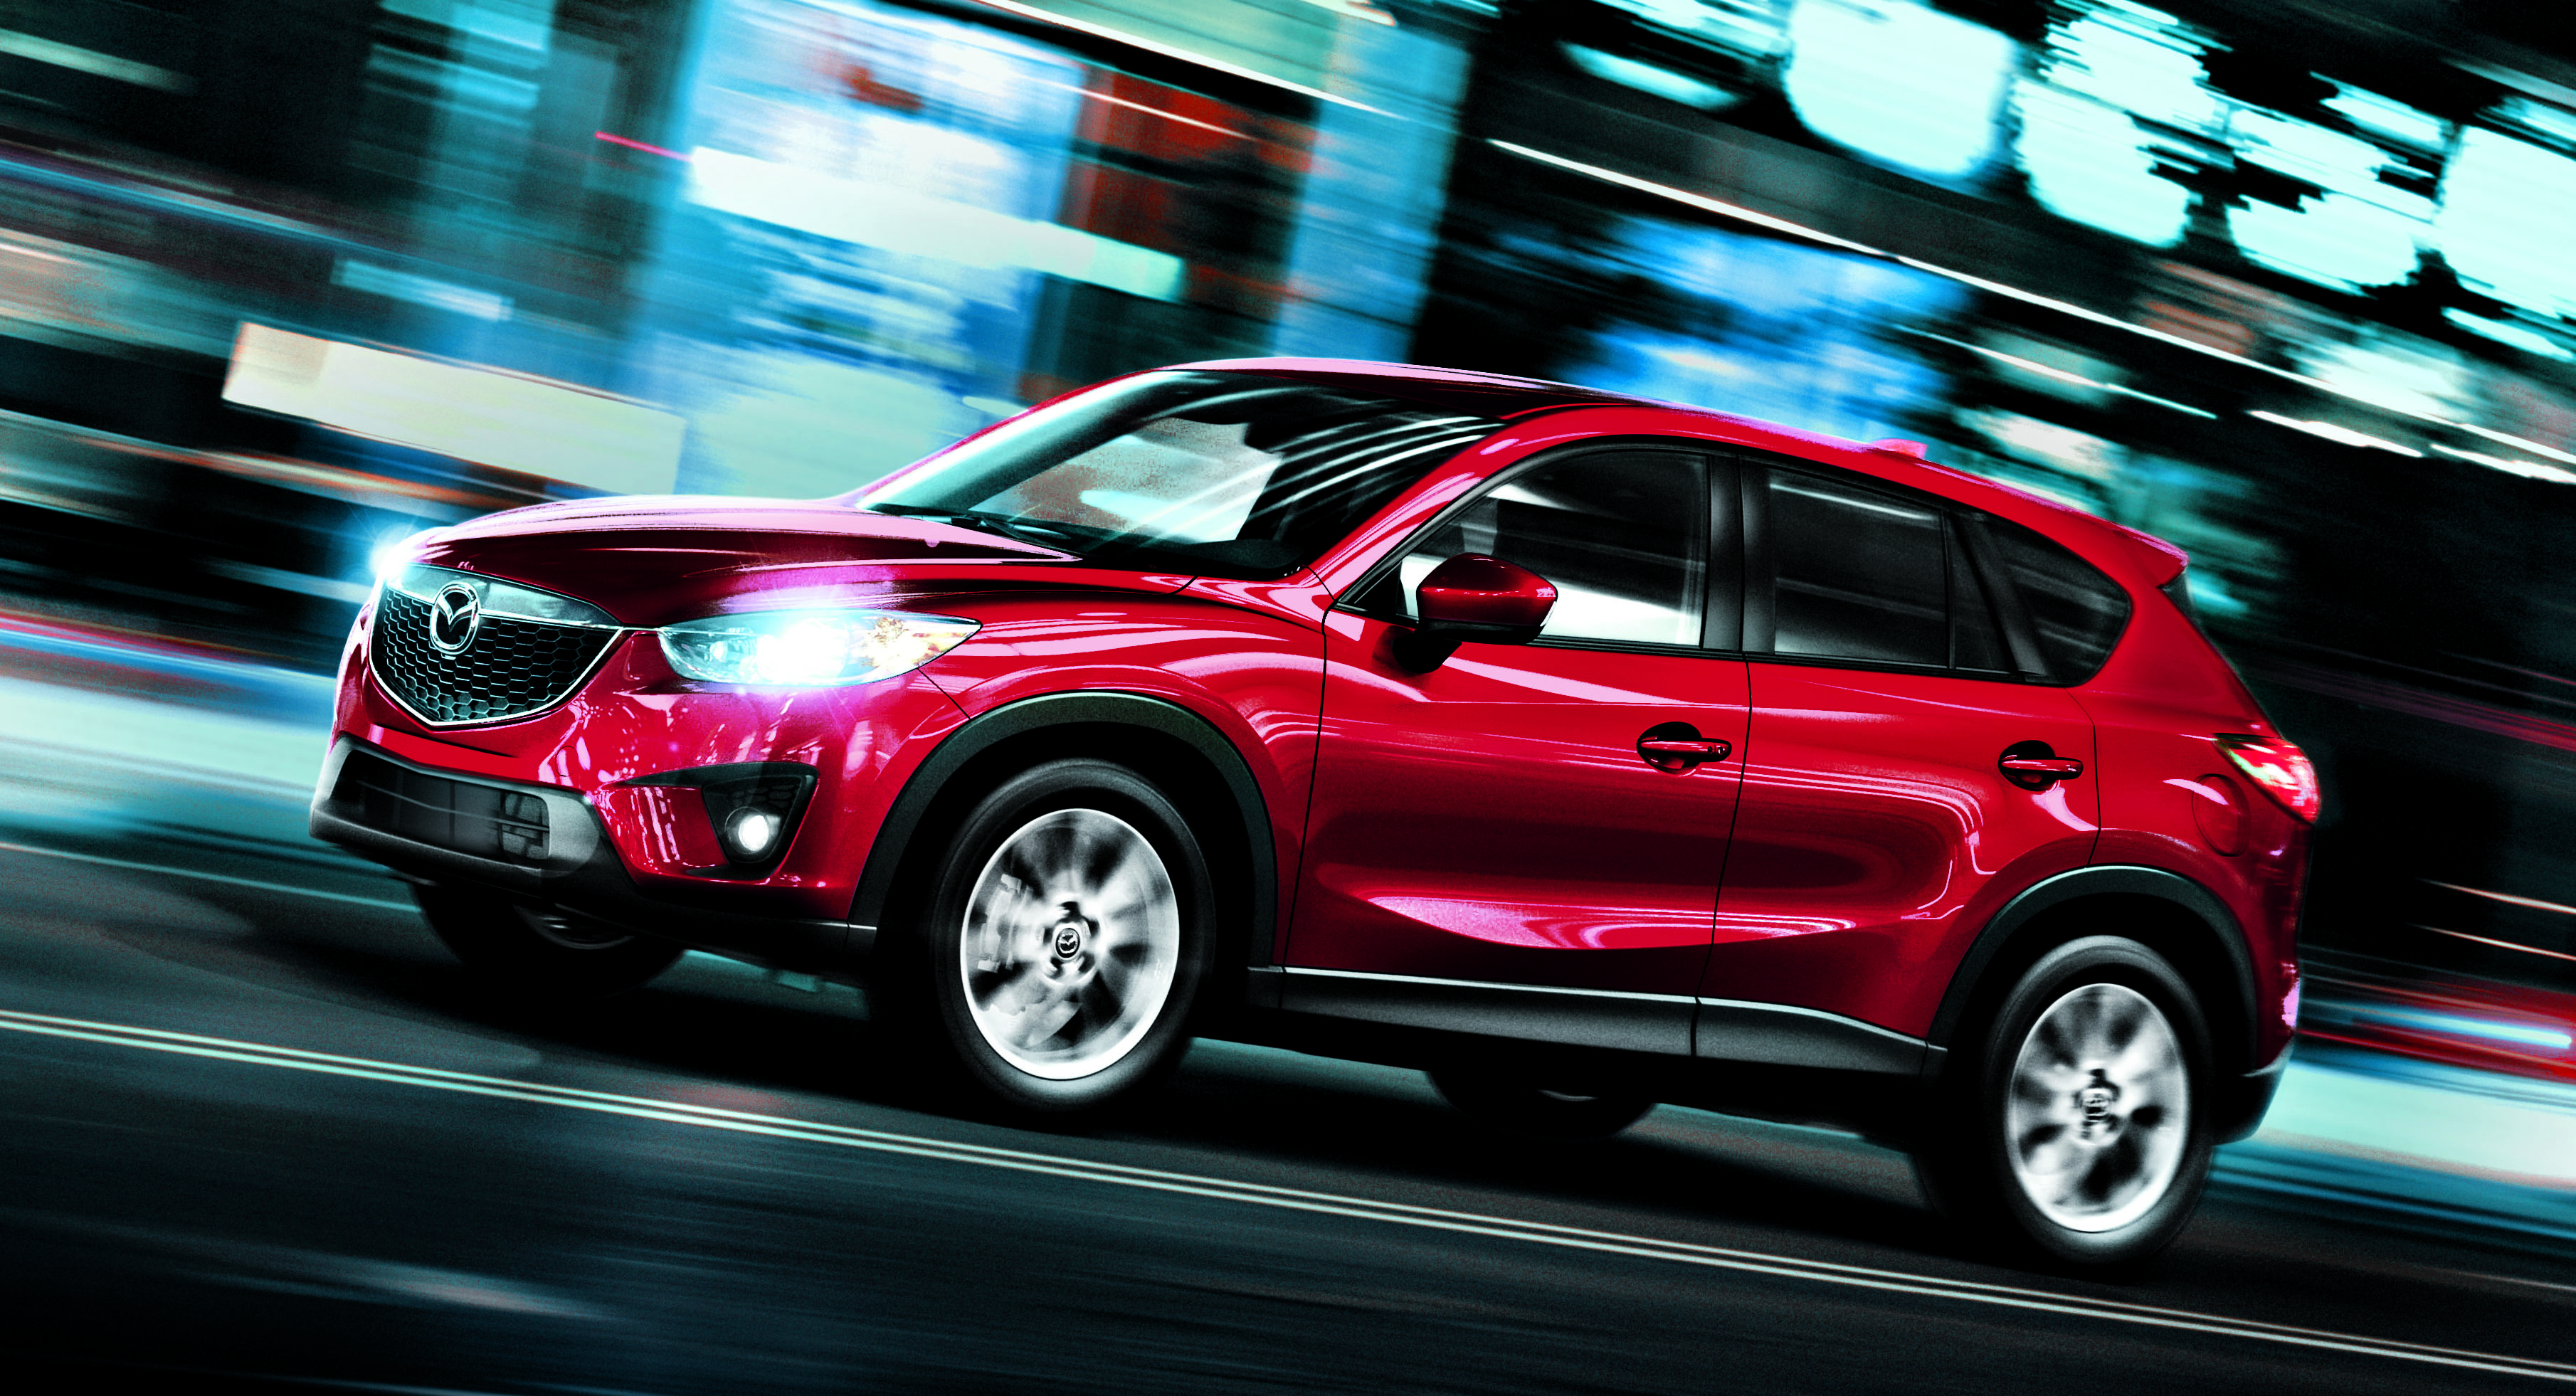 2015 mazda cx 5 information and photos zombiedrive. Black Bedroom Furniture Sets. Home Design Ideas